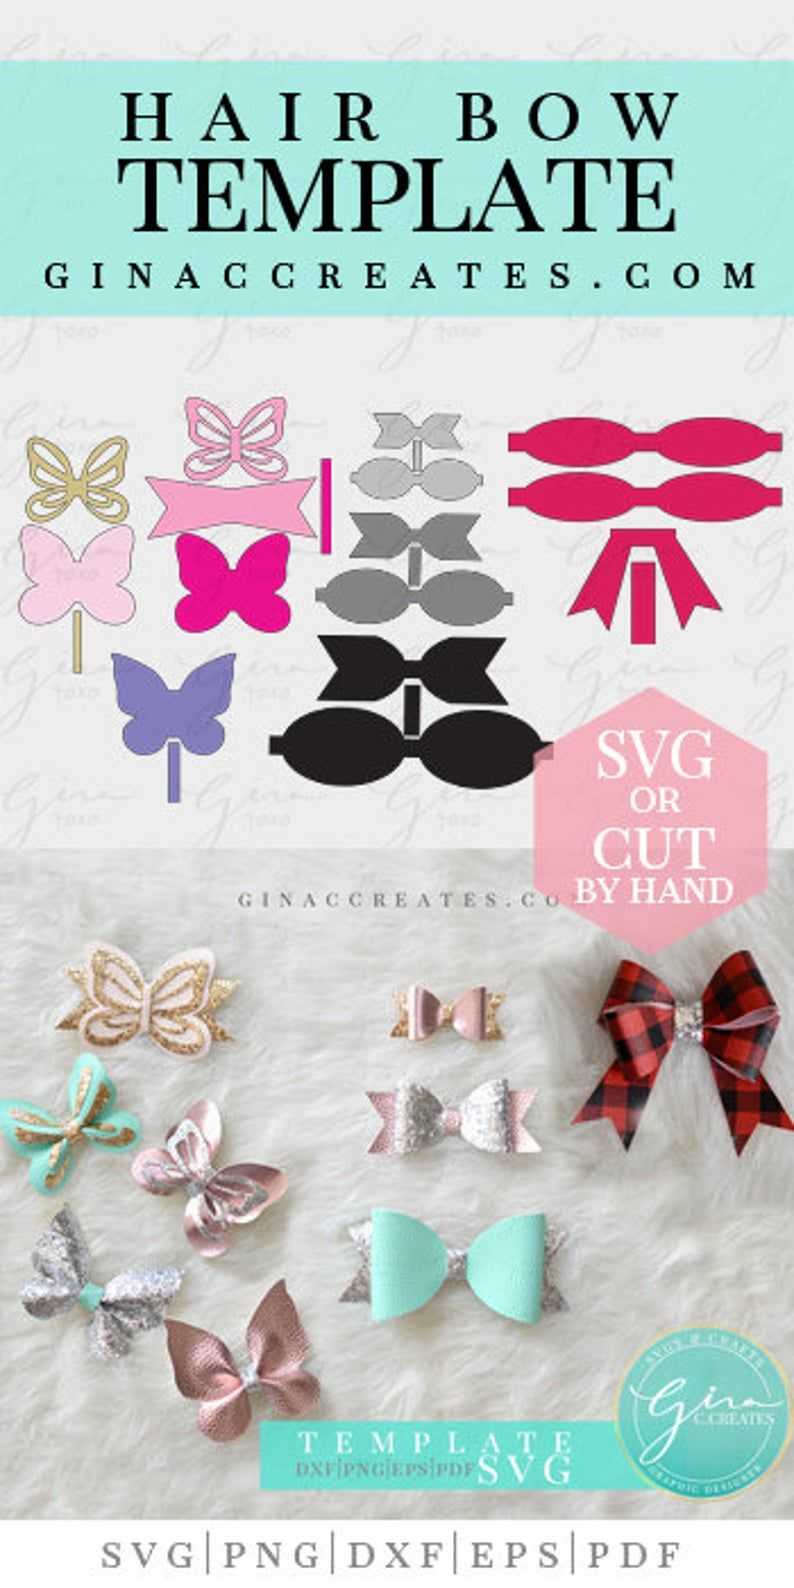 Hair Bow Template Bundle, Standard Bow 3 sizes, Double bow, Butterfly Bow, Printable Bow Template and SVG